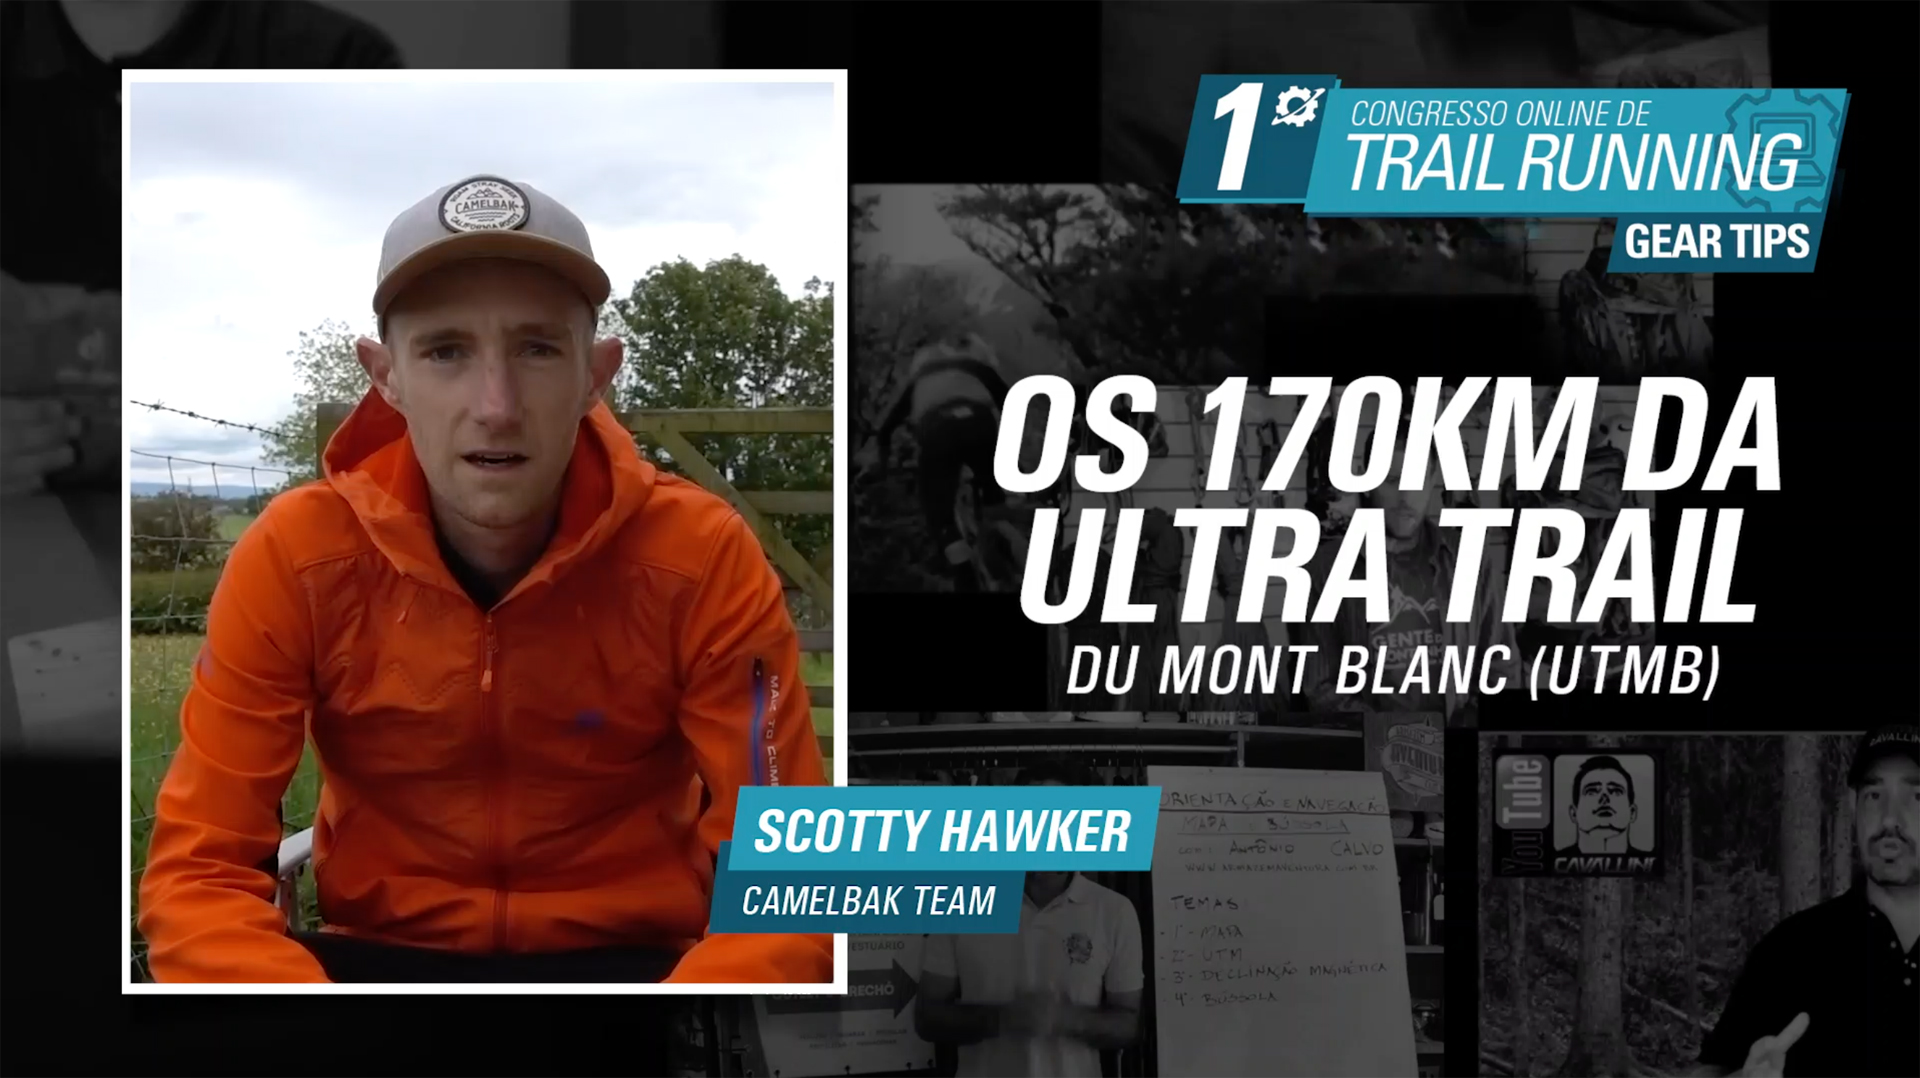 Ultra Trail du Mont Blanc - Scotty Hawker